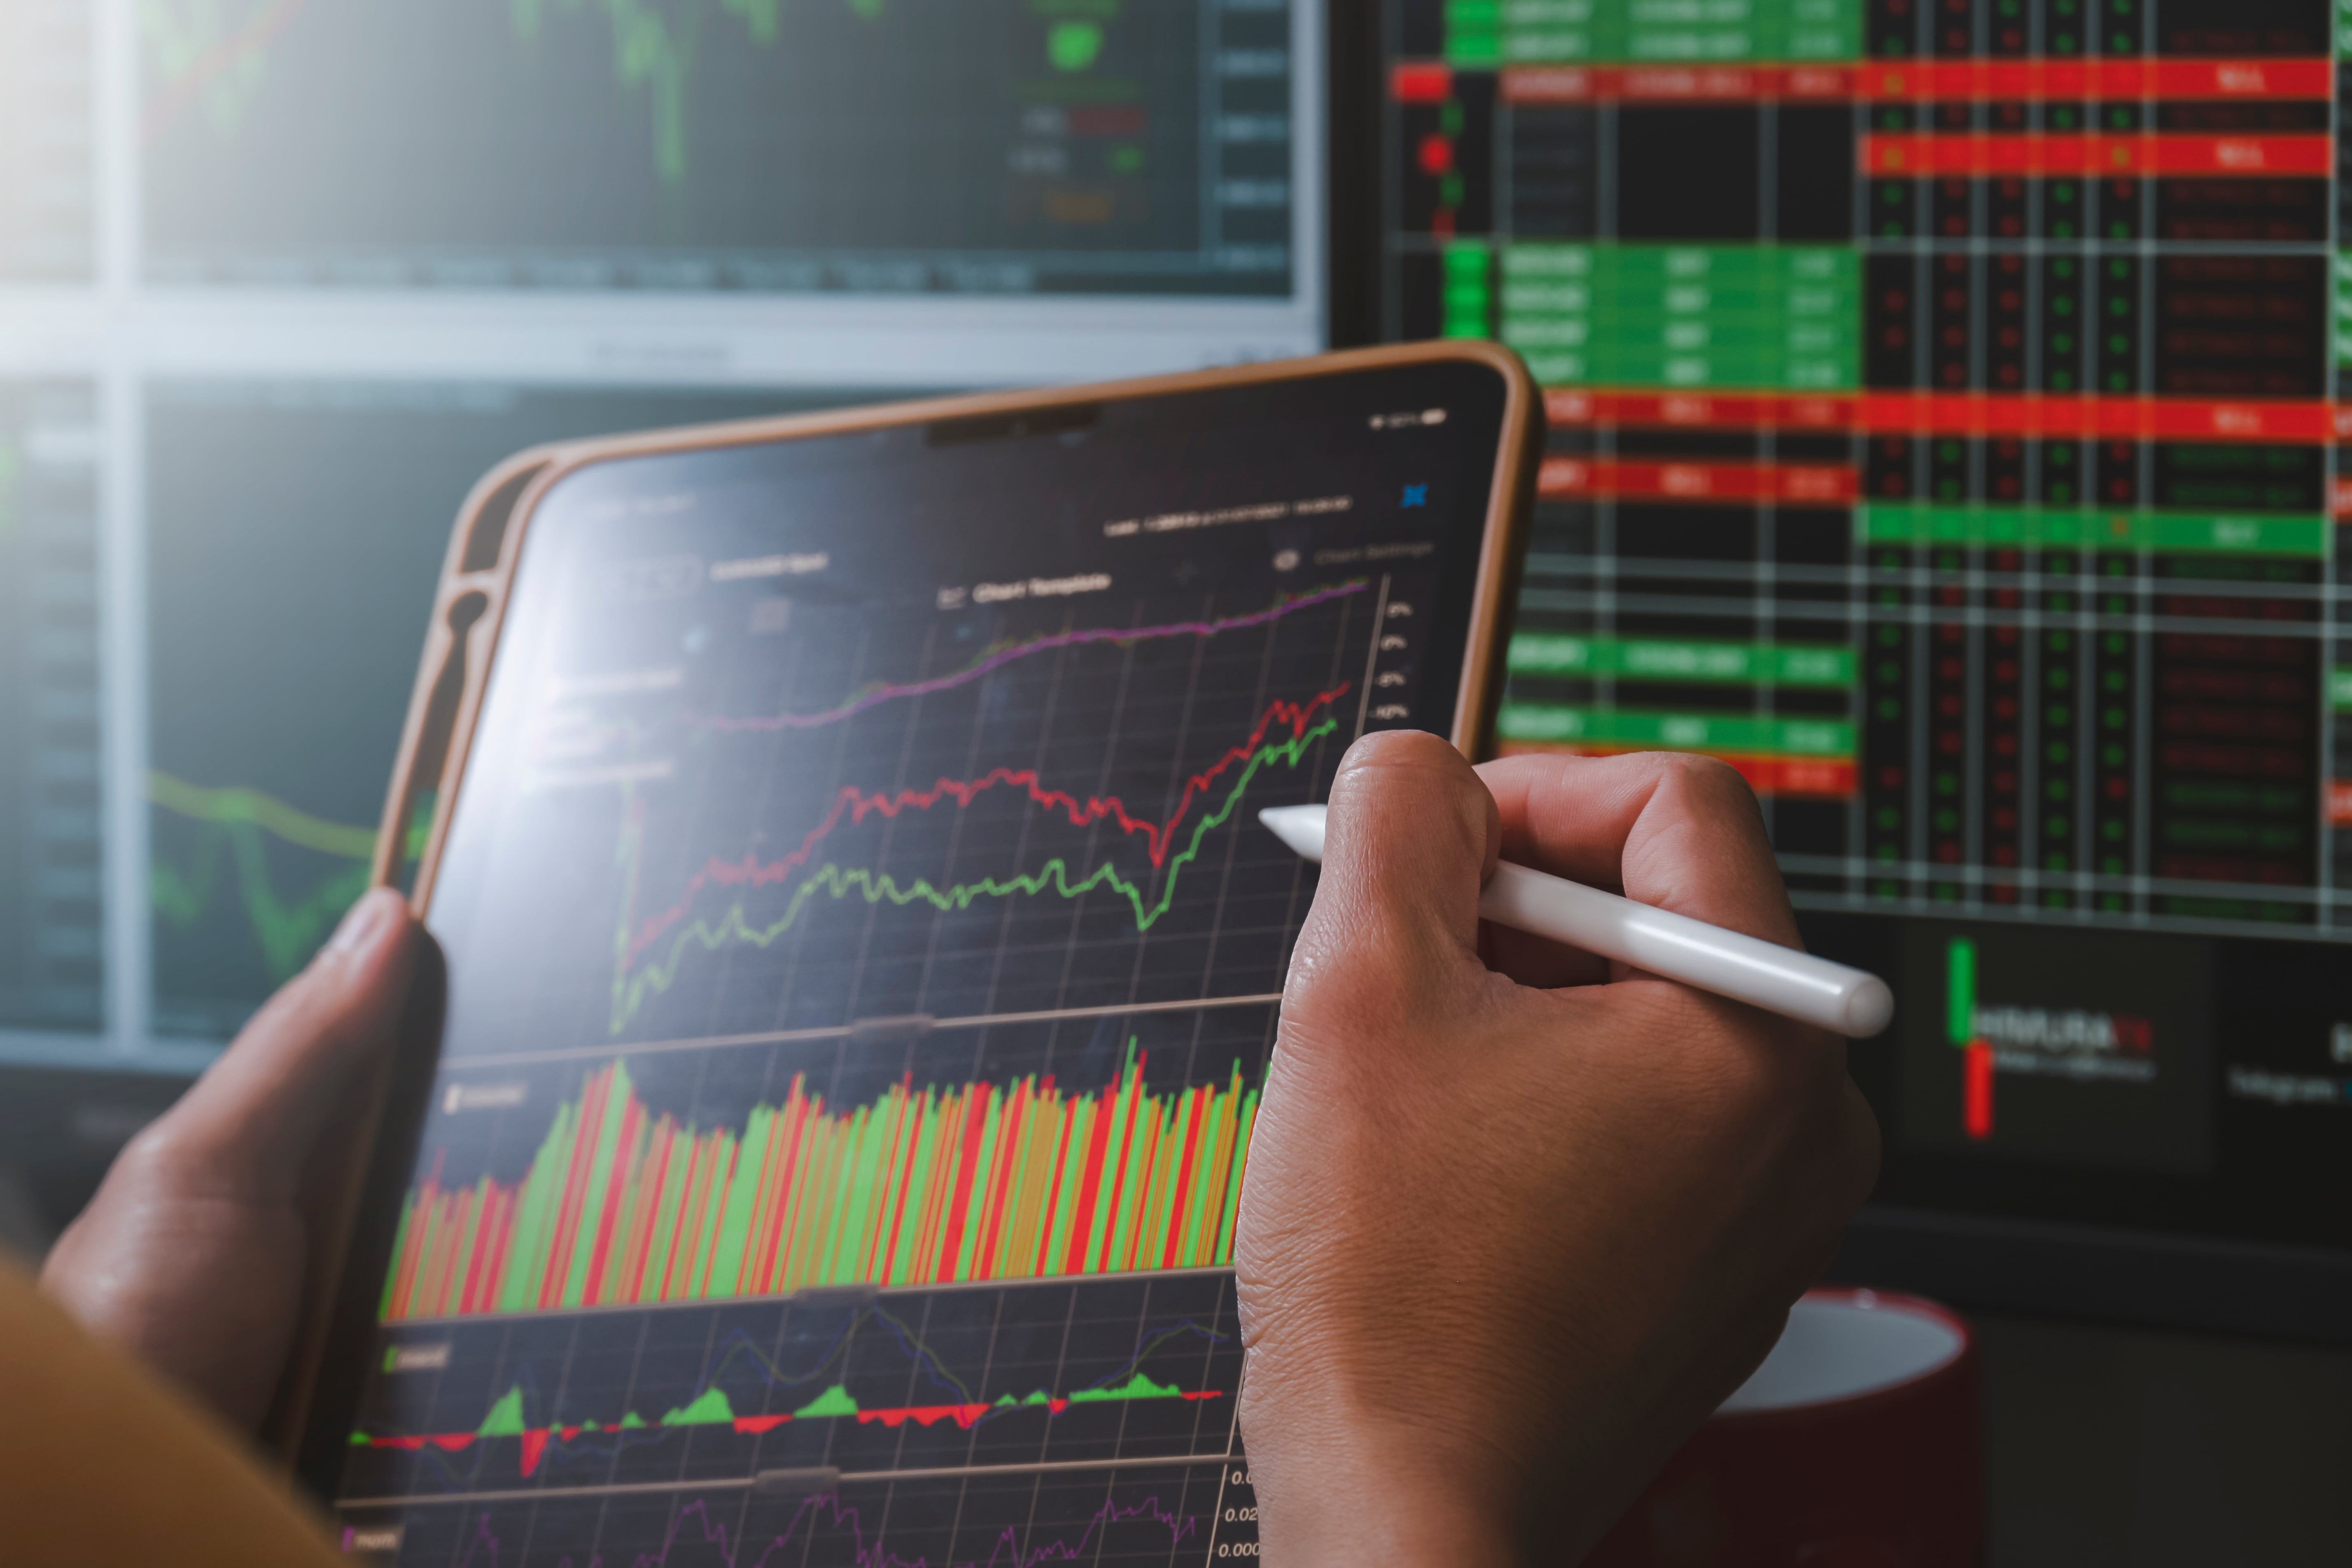 Analyzing stocks to place a market order